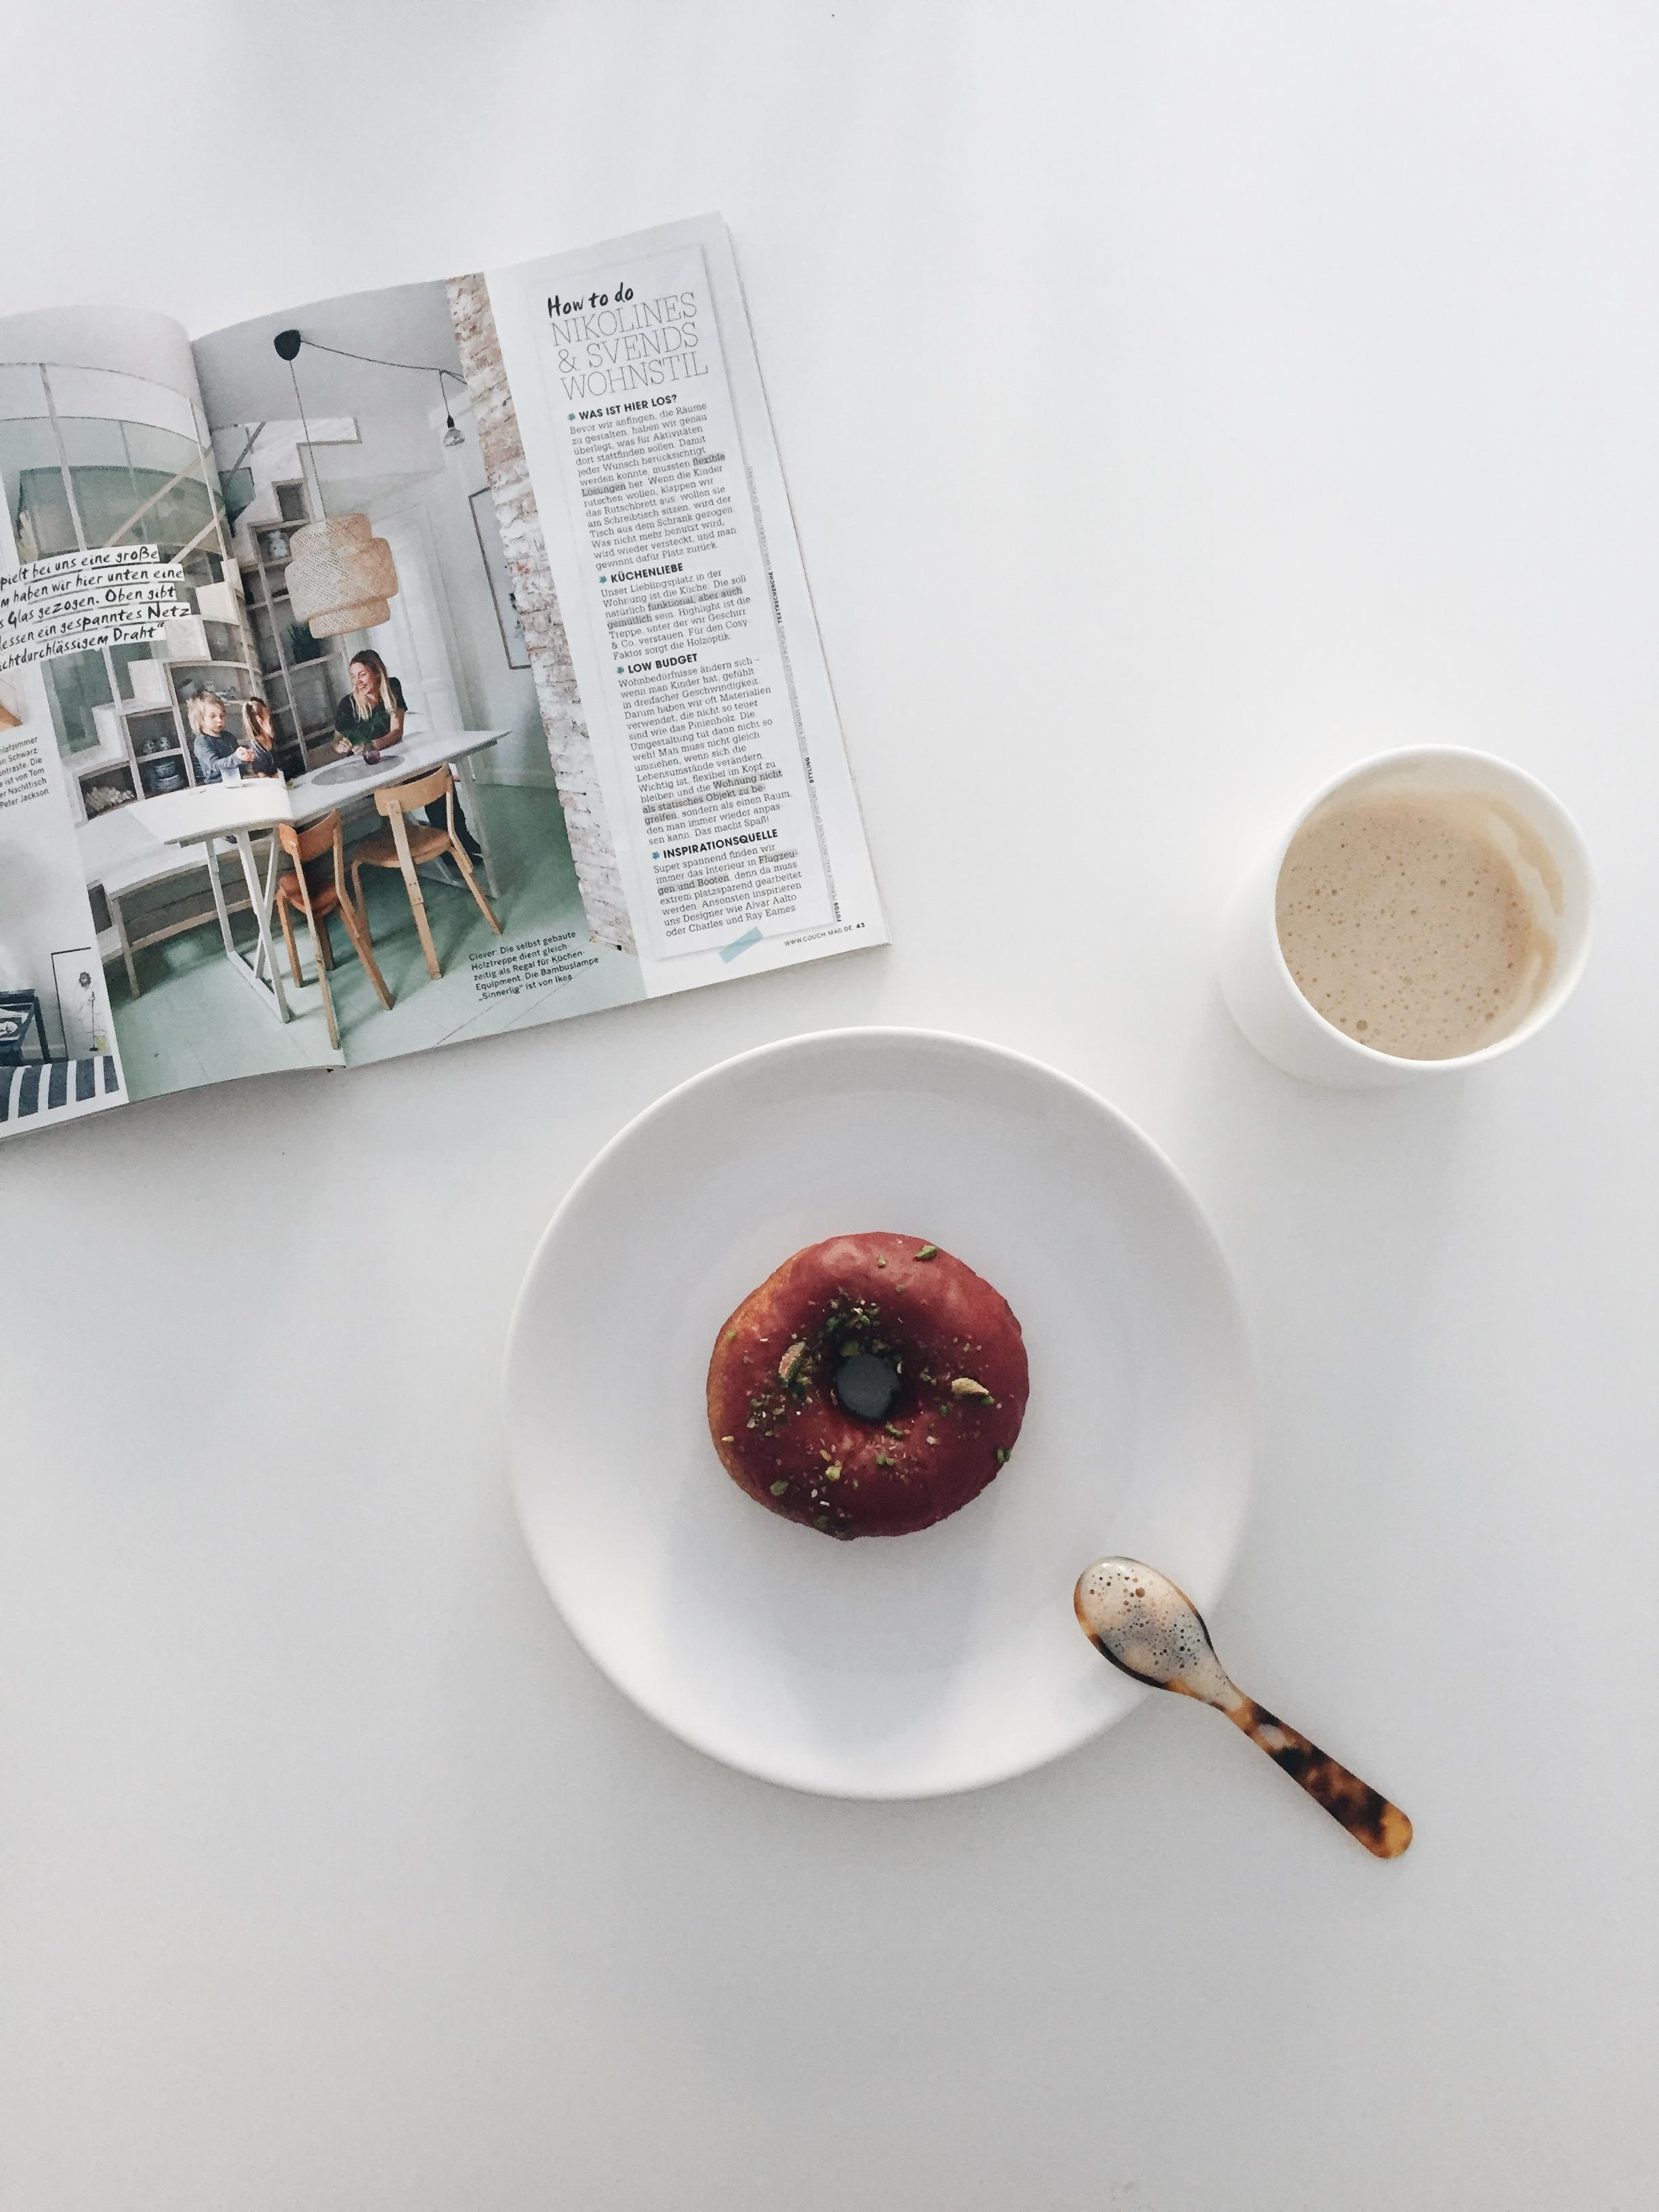 Morning essentials. #couchmagazin #couchstyle #kaffeeliebe